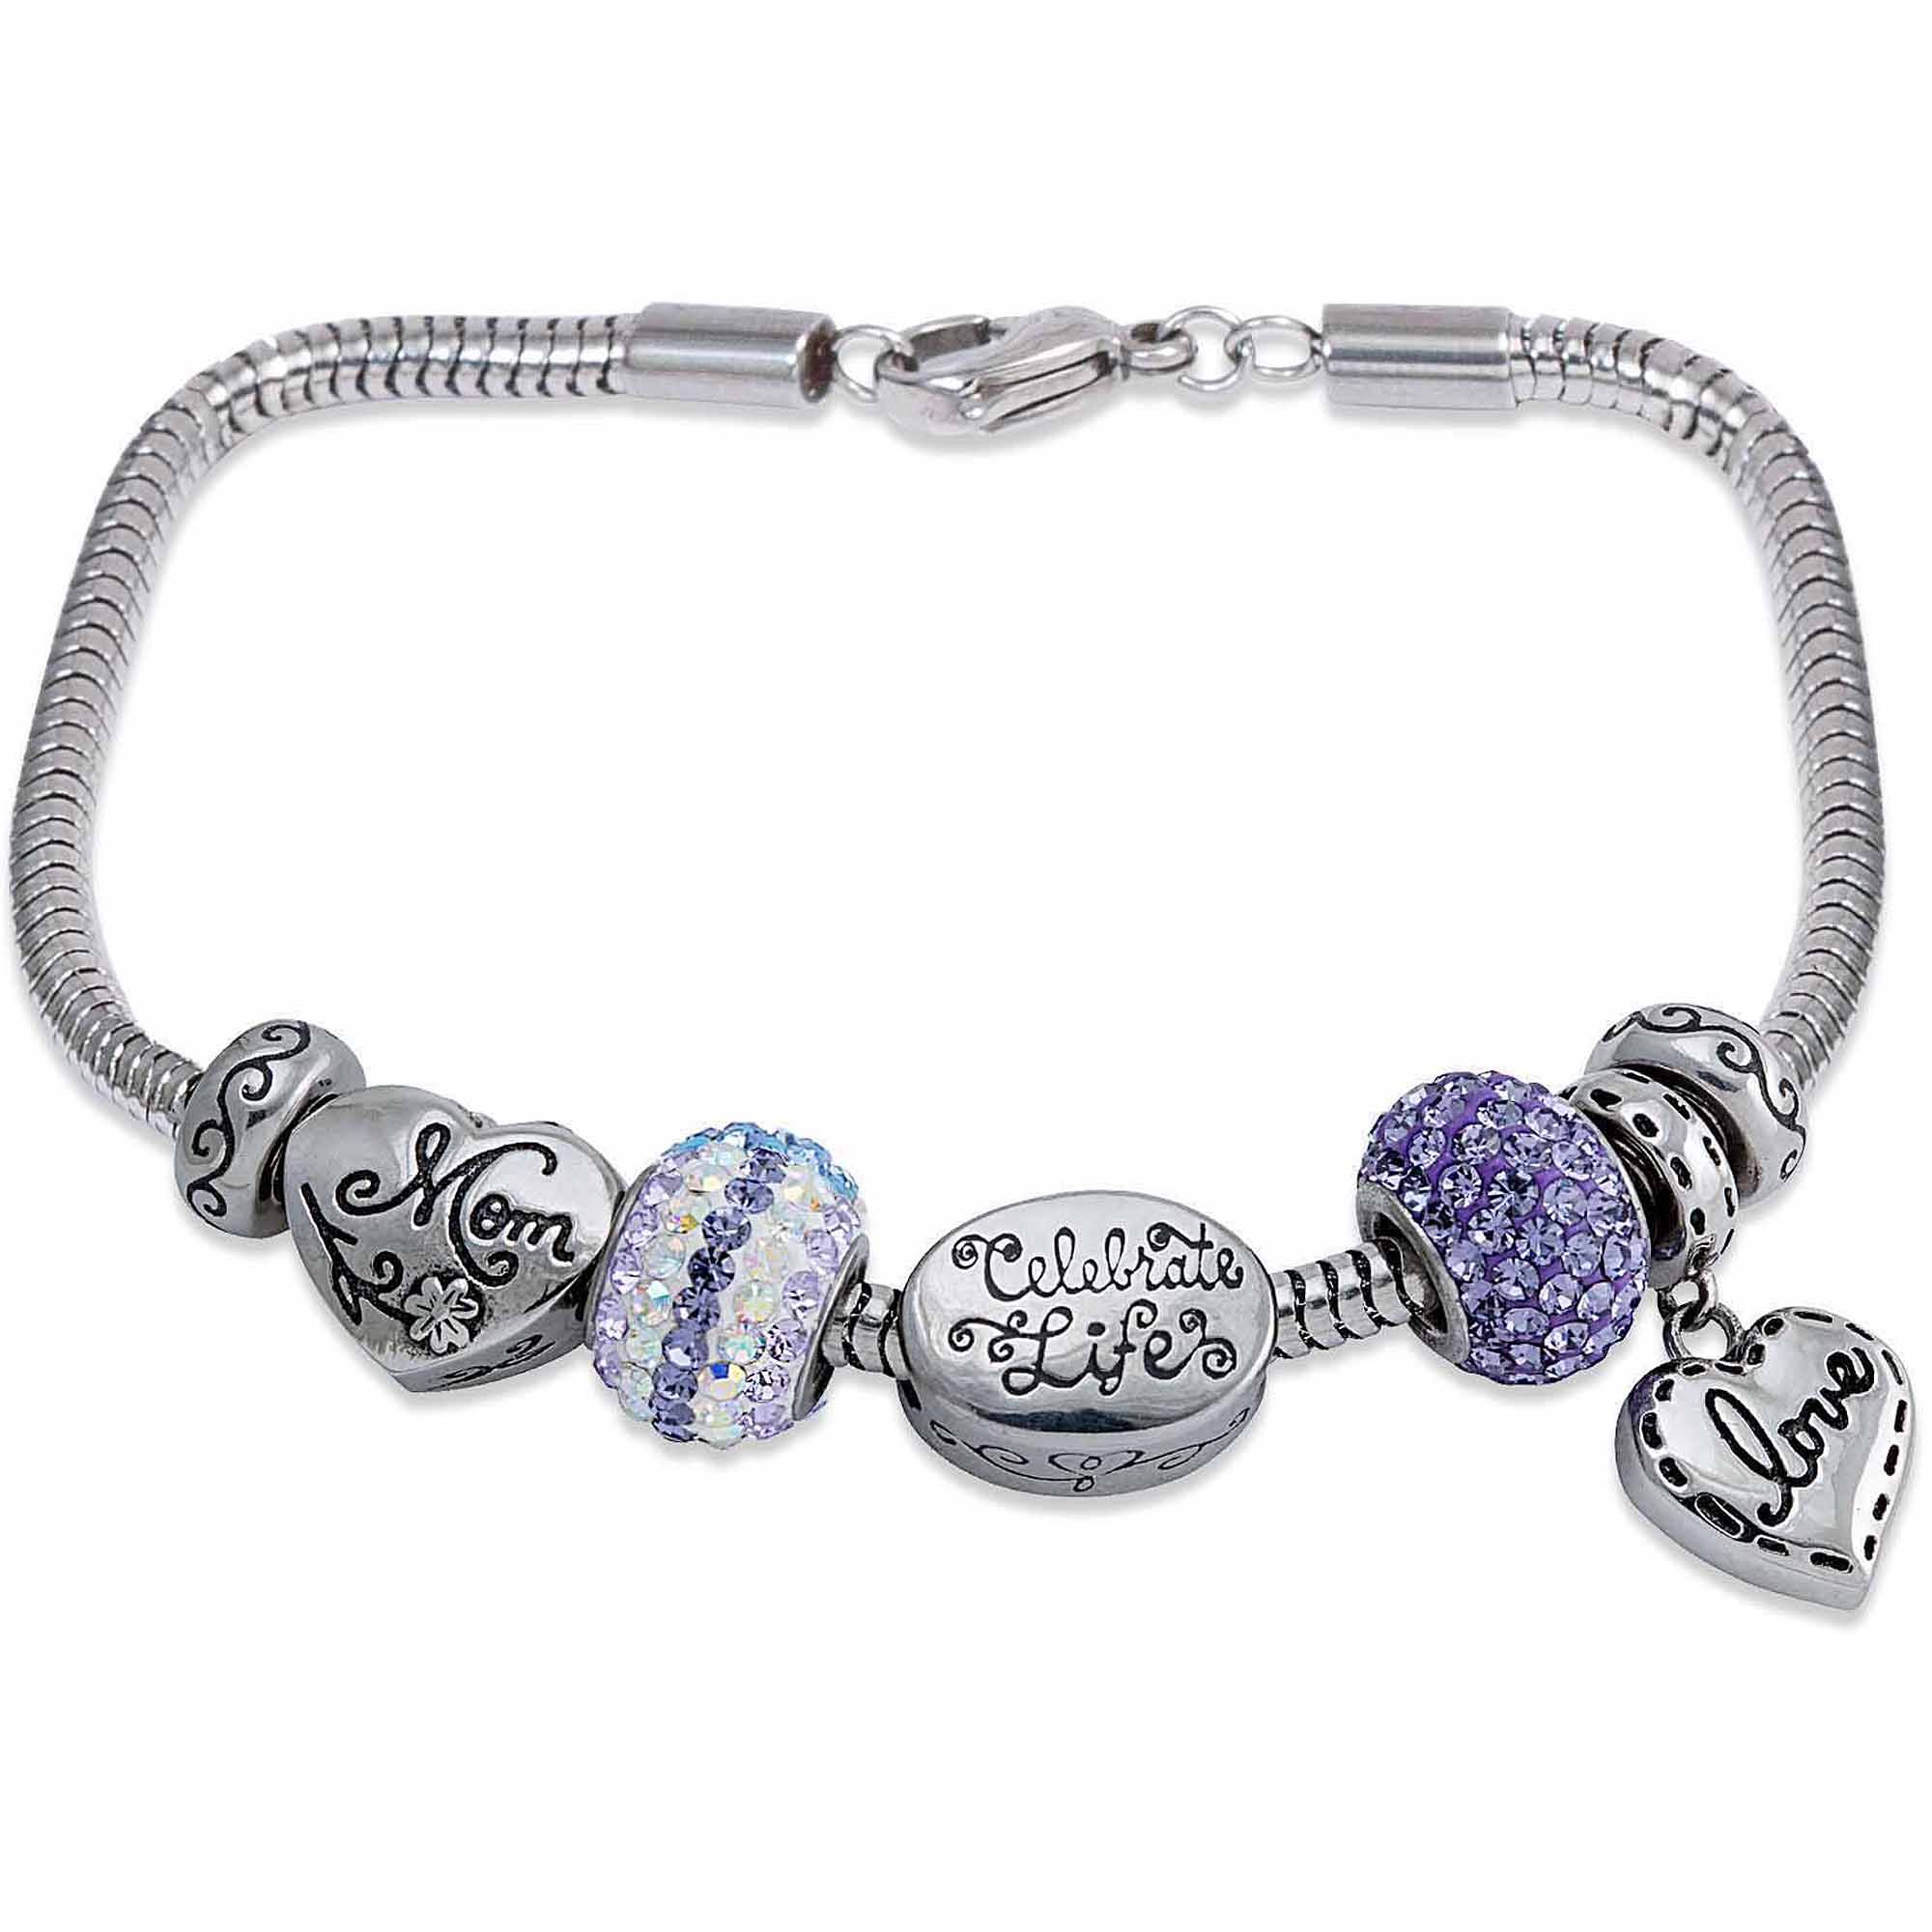 Charm Bracelets for Women – The Perfect Gift StyleSkier